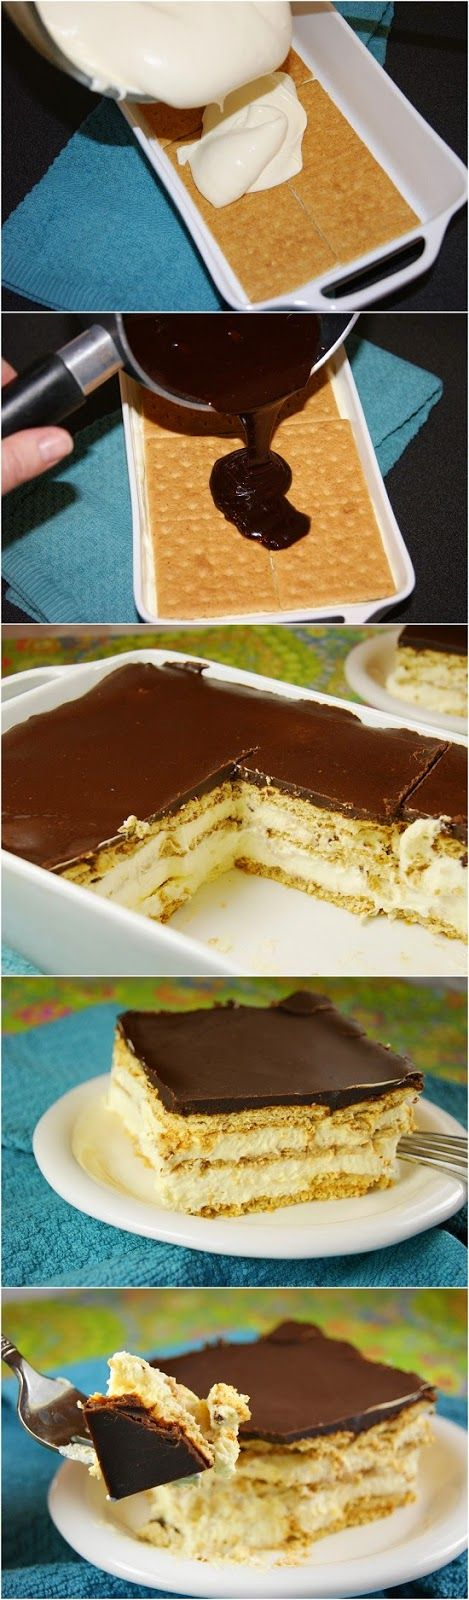 ❤️No Bake Eclair Cake. Had this in Louisiana this past weekend, and it blew my mind.❤️